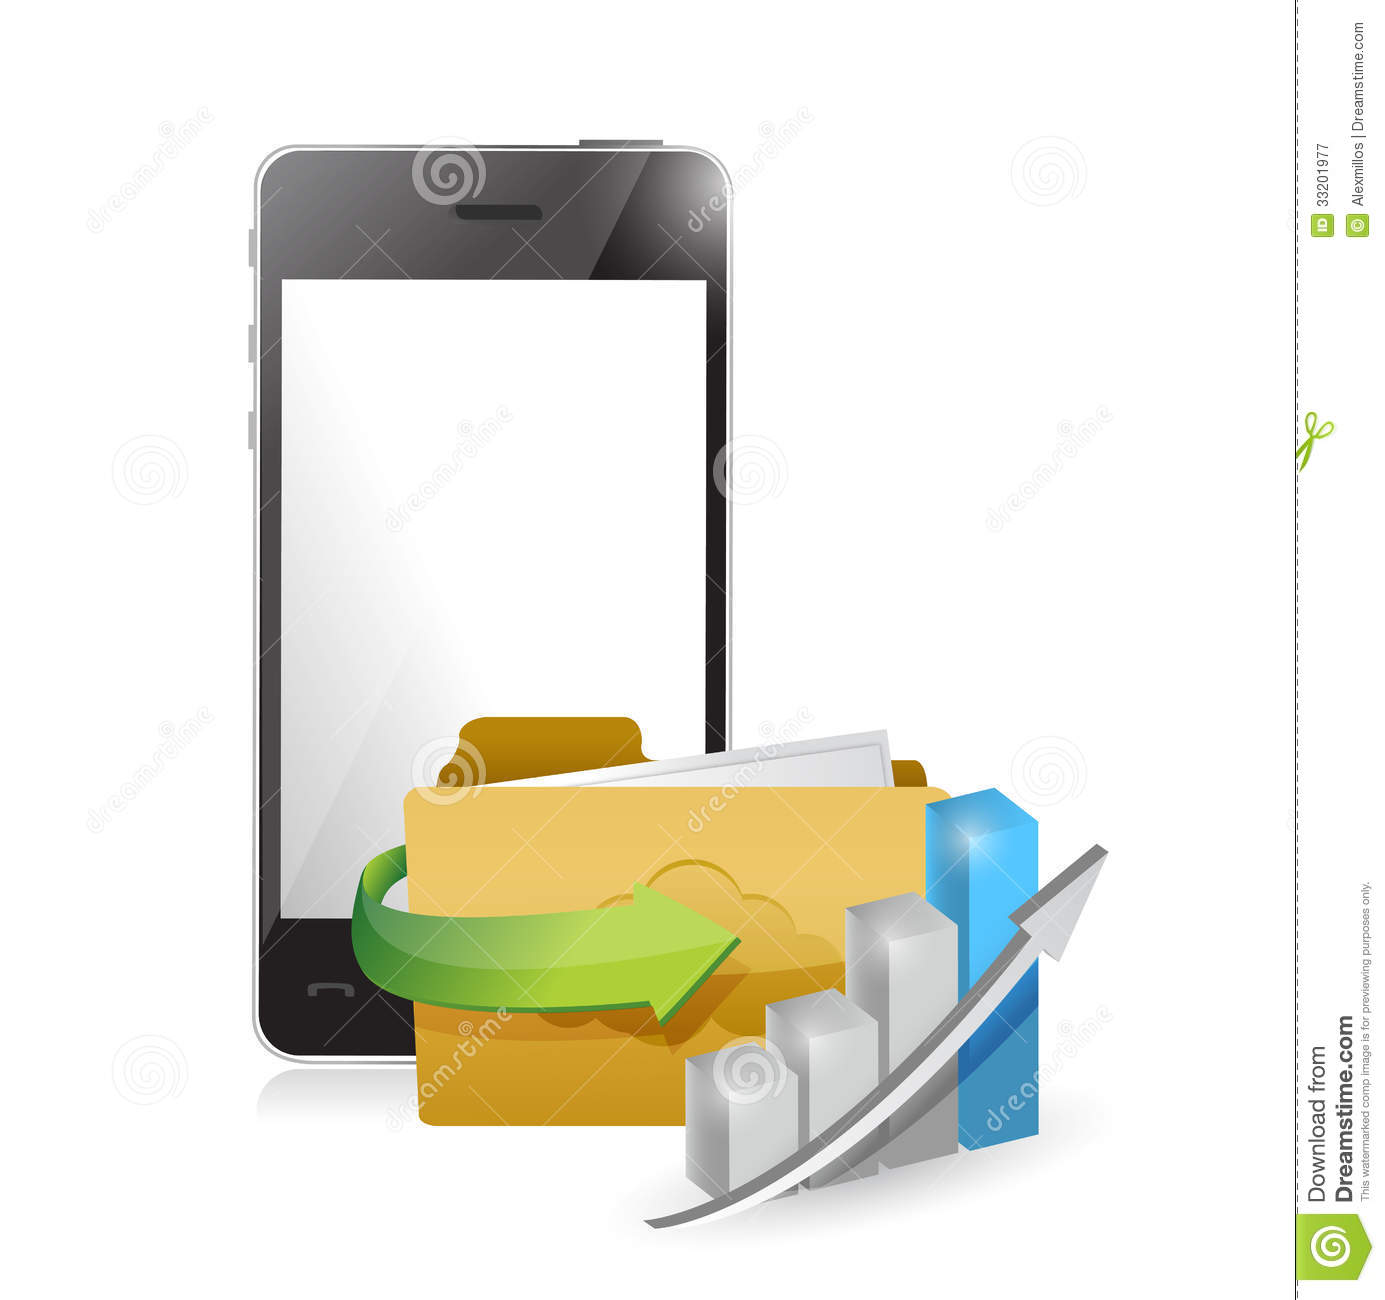 Phone business plans